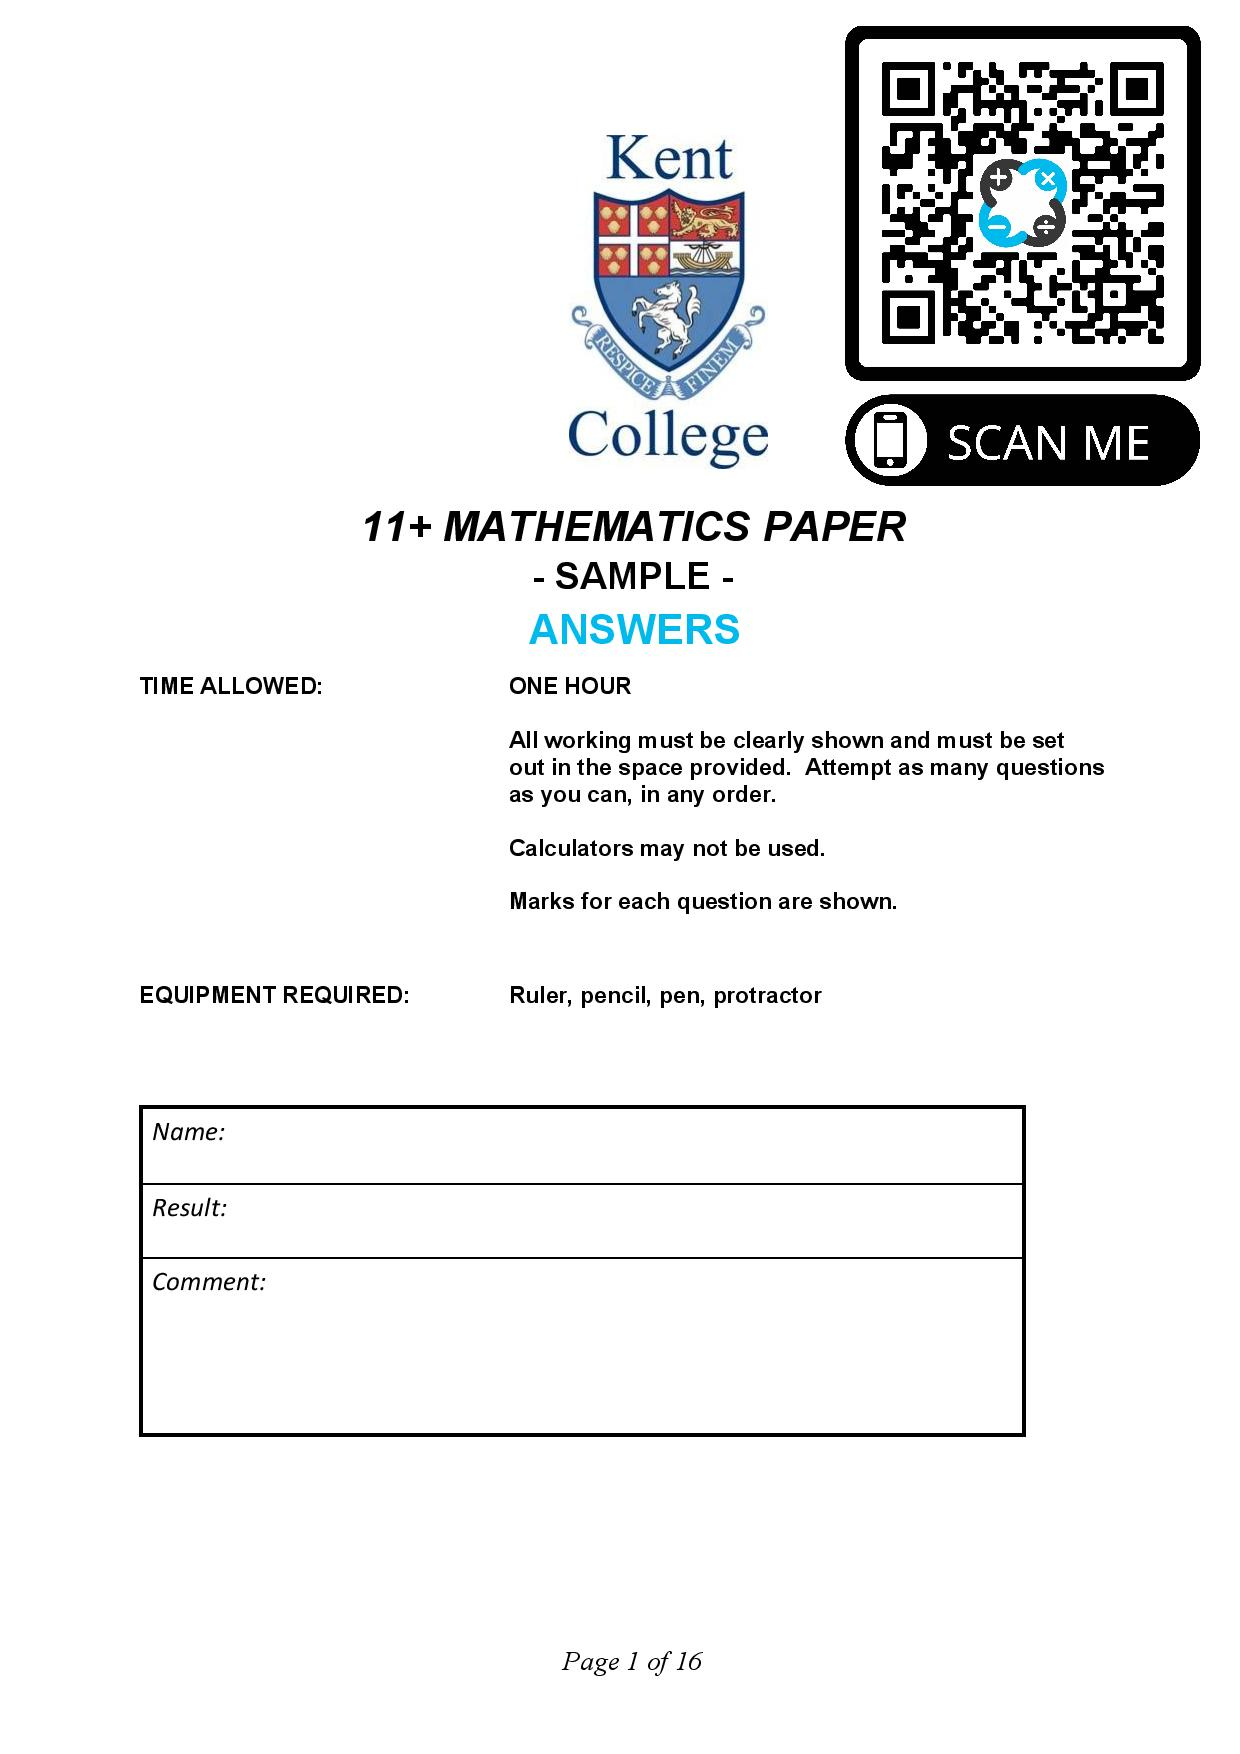 Kent College 11 MATHEMATICS PAPER SAMPLE Answers Paper page 001